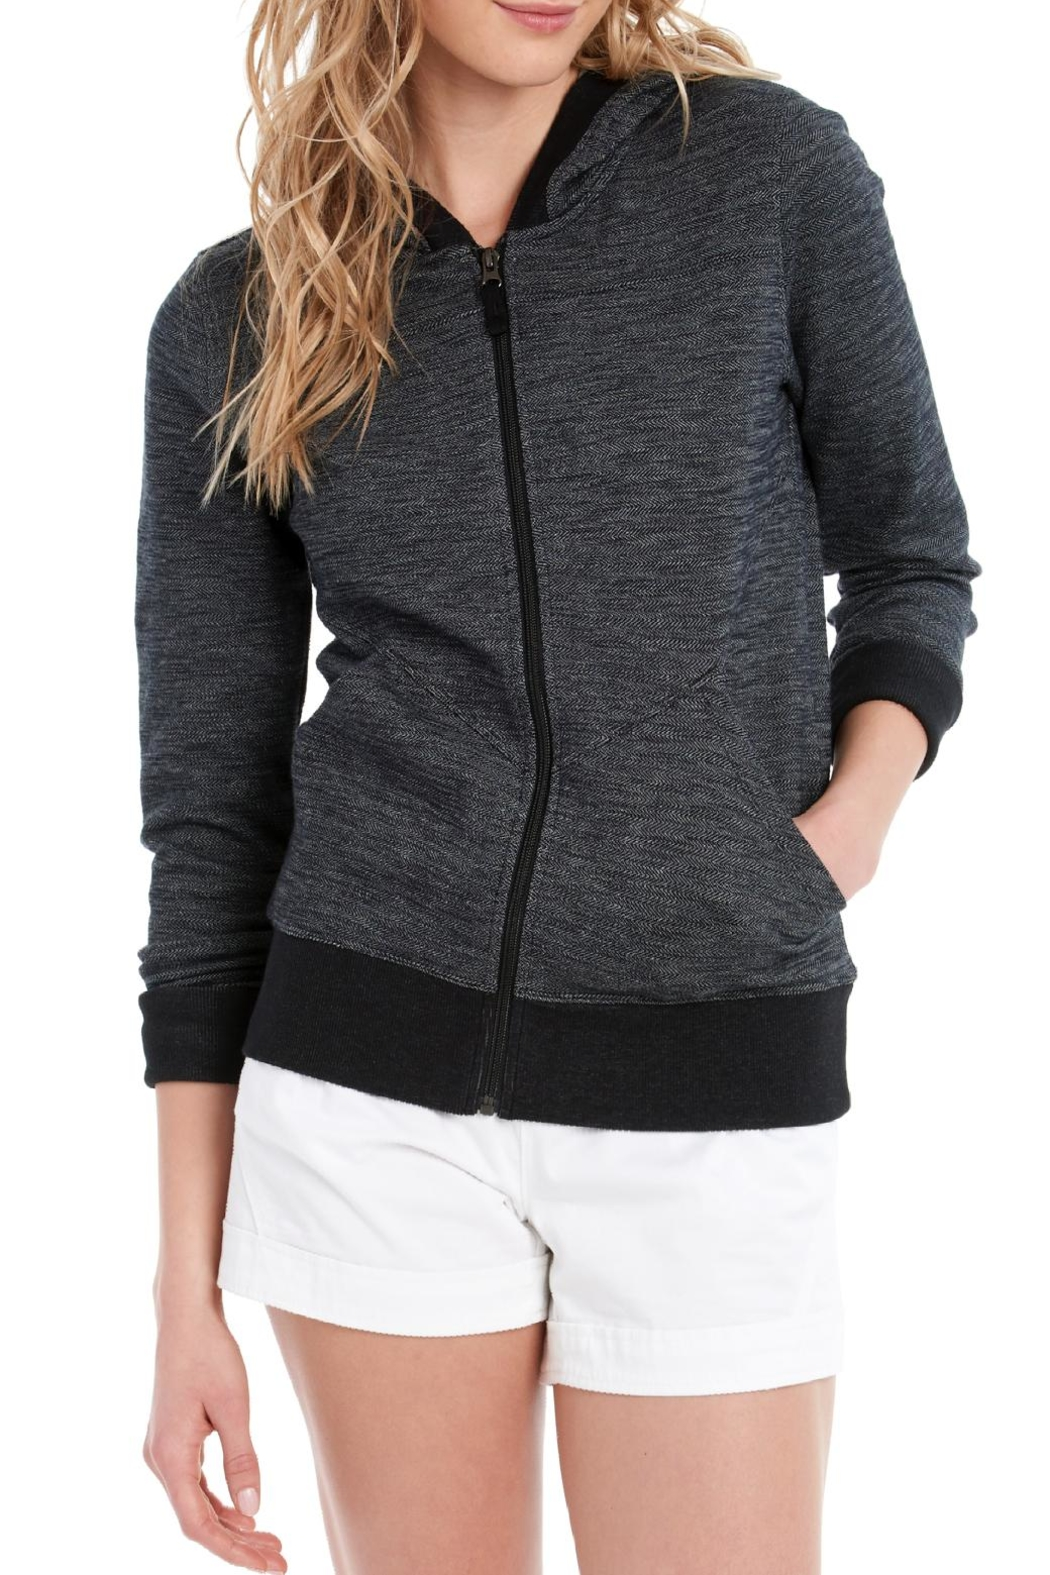 Lole India Hooded Cardigan - Main Image